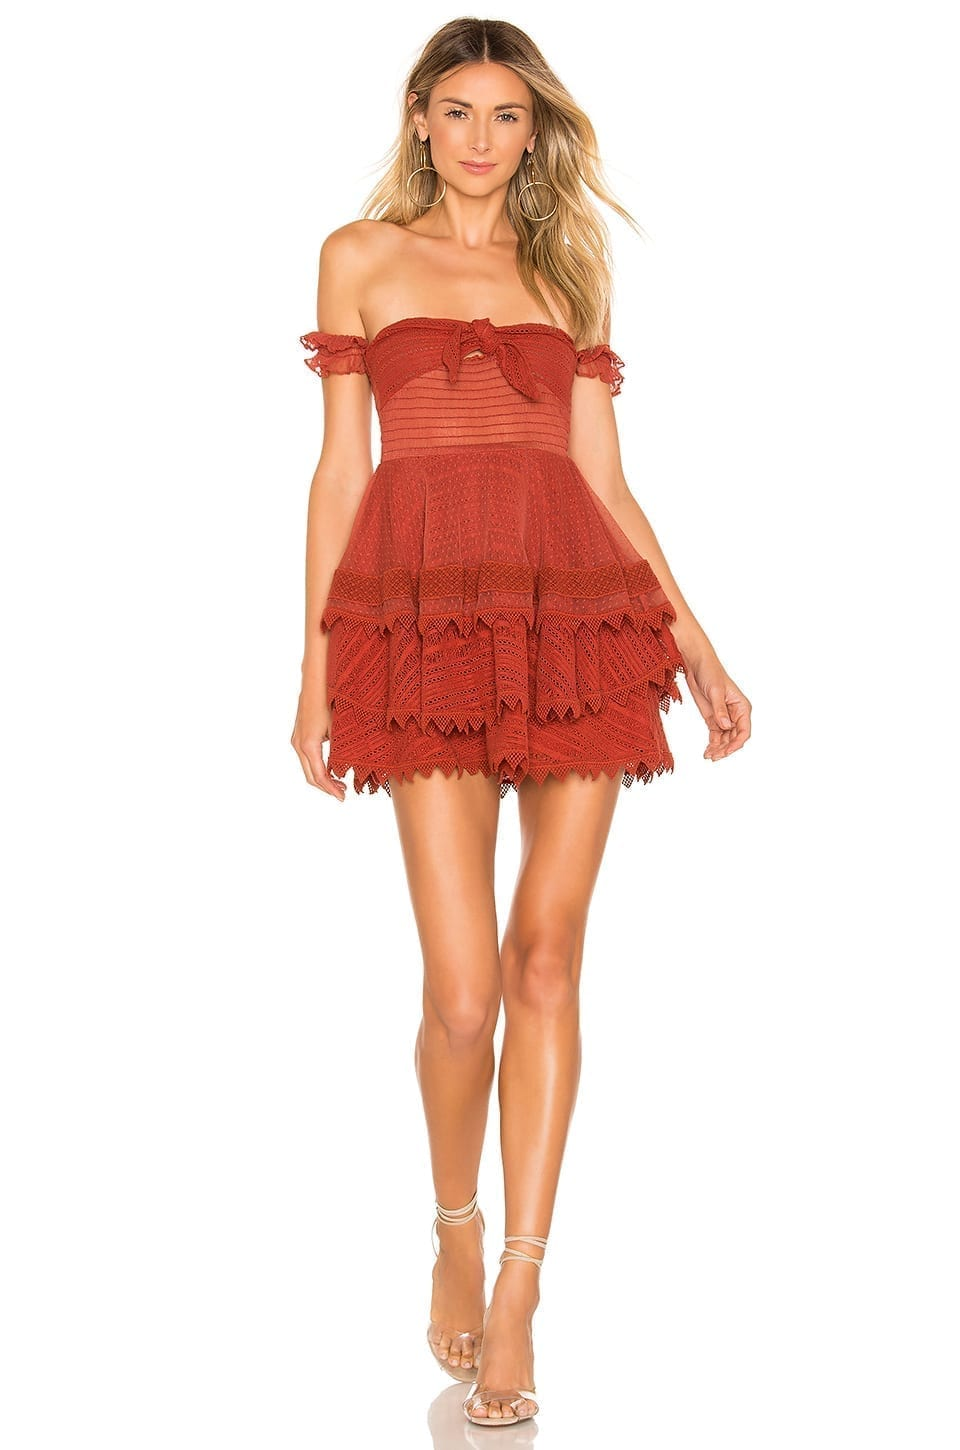 HOUSE OF HARLOW 1960 X REVOLVE Gaines Red Dress